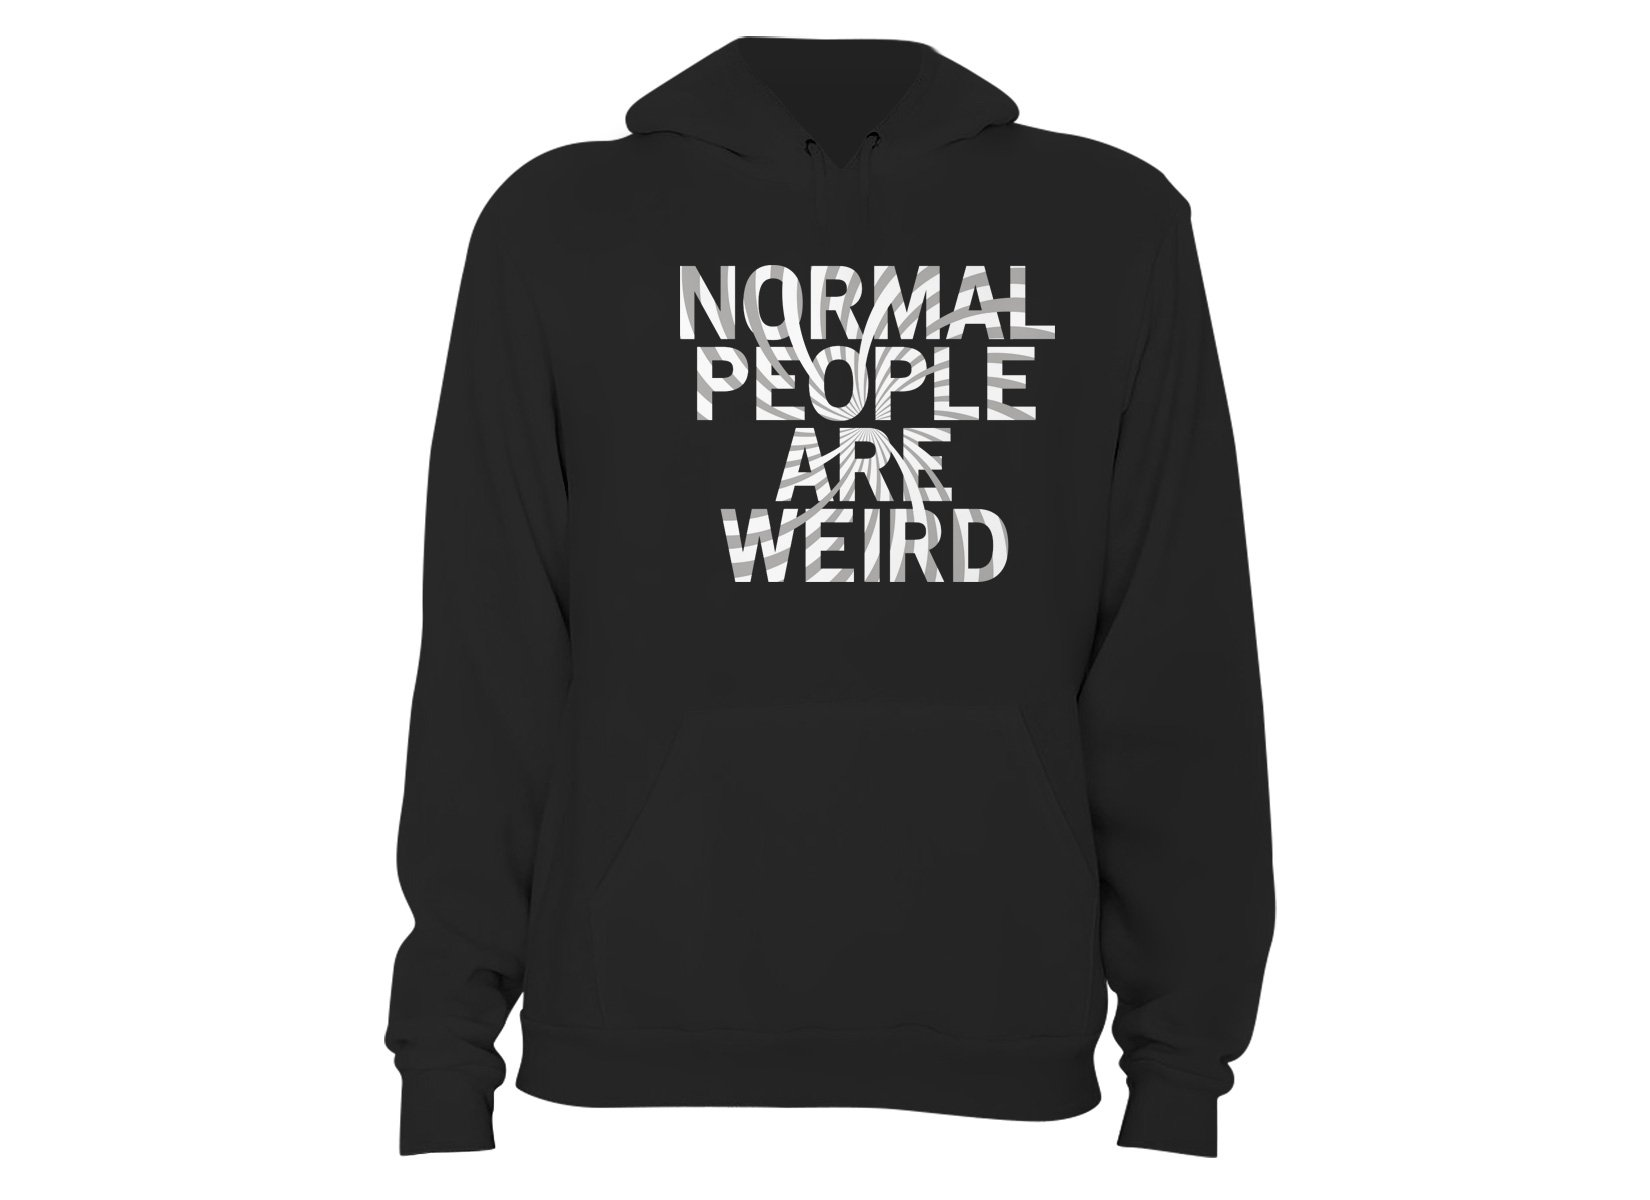 Normal People Are Weird on Hoodie